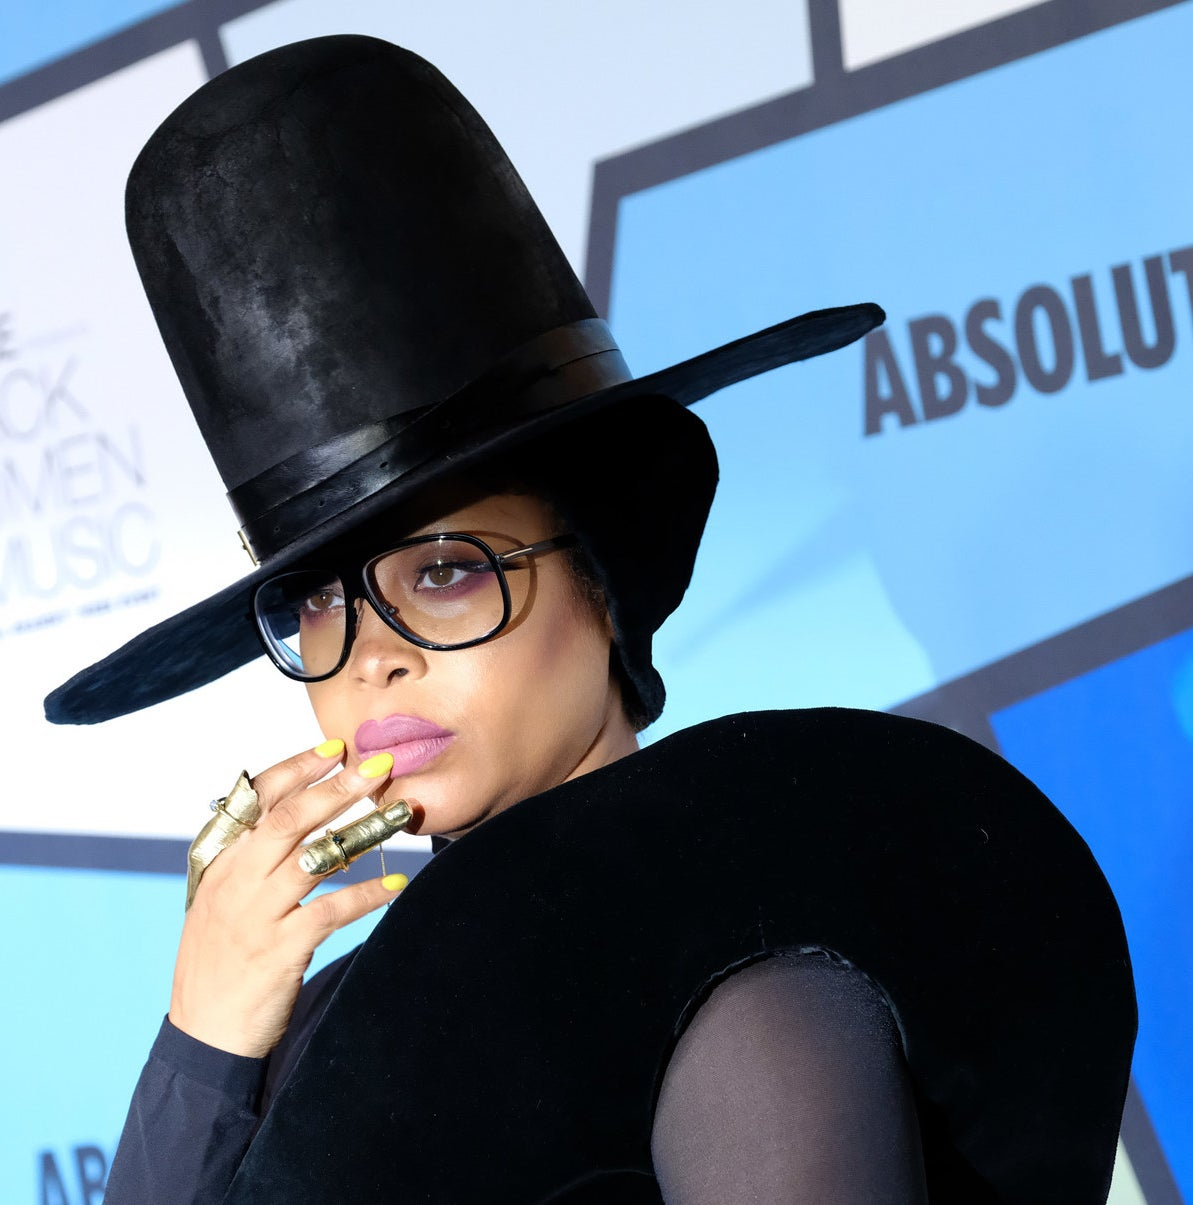 We really don't deserve Erykah Badu and the otherworldly beauty she so generously gives us.